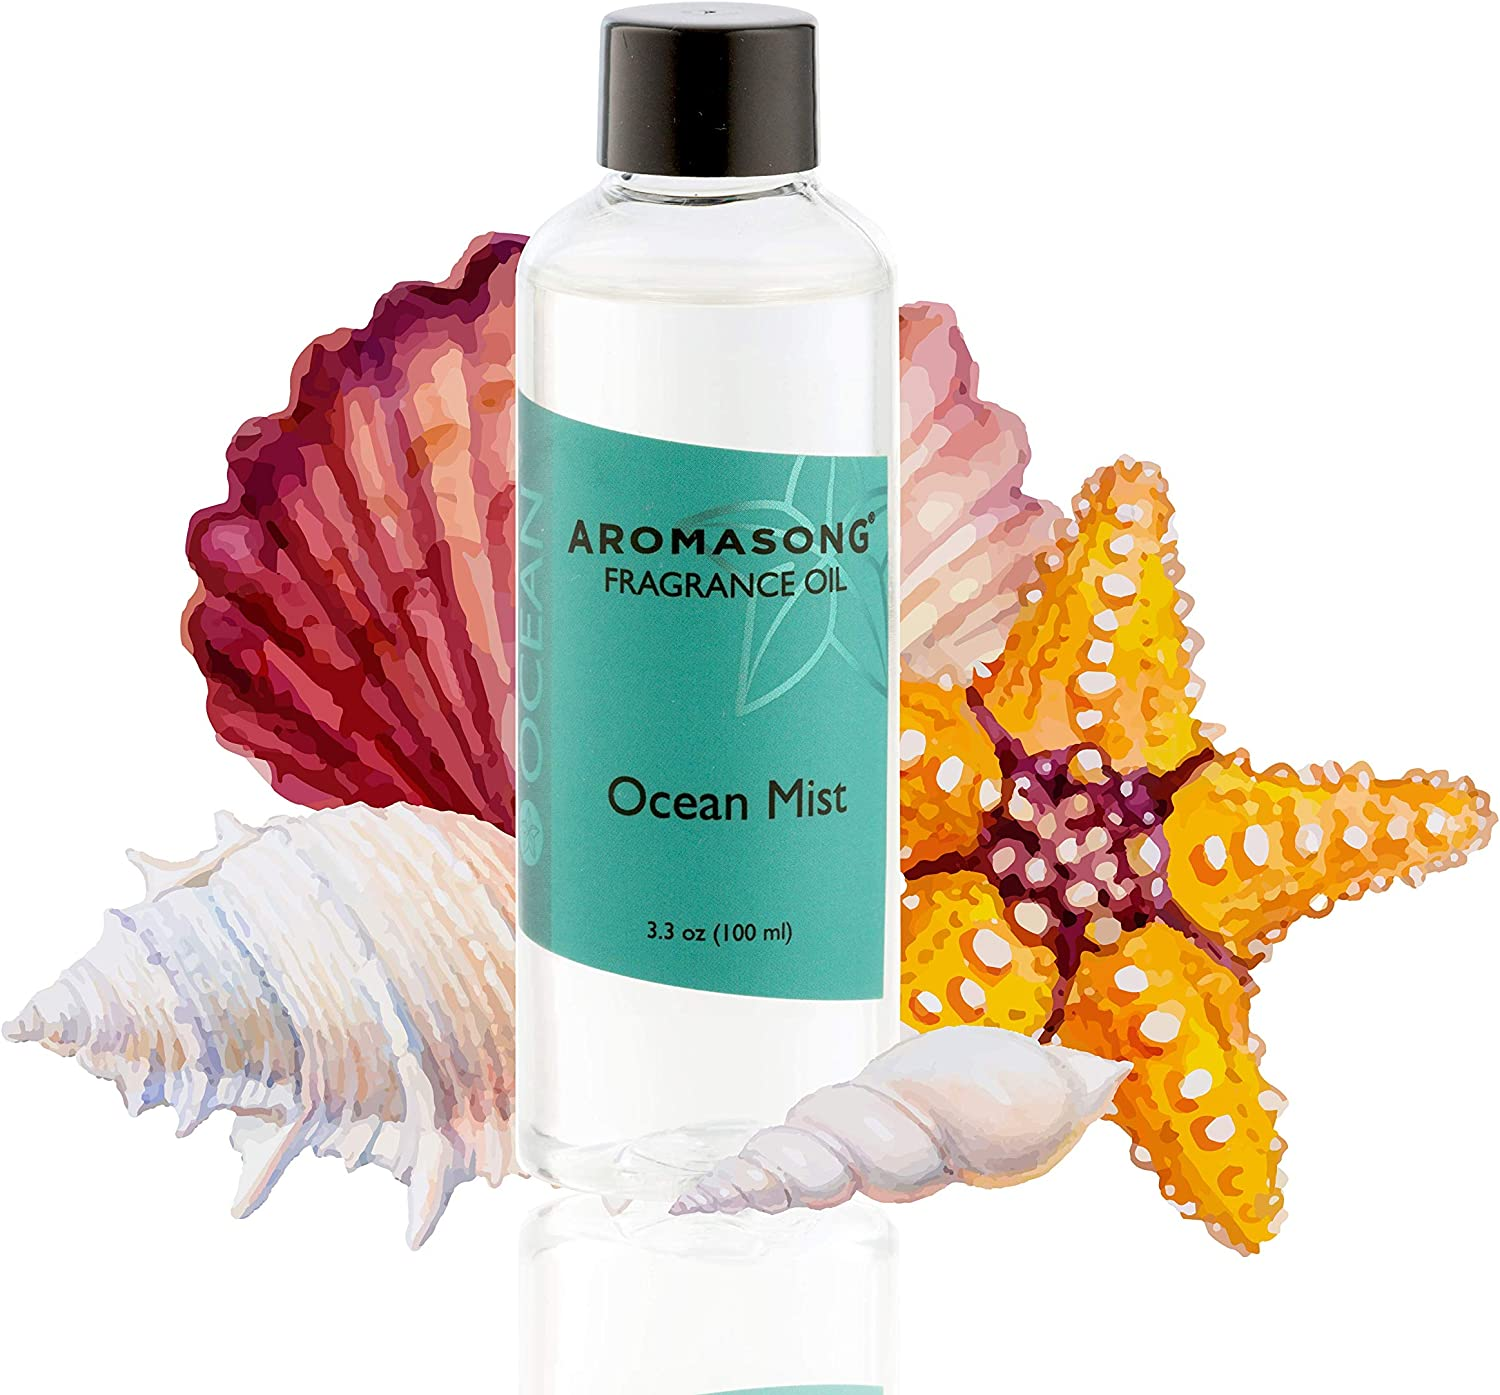 Aromasong Ocean Mist Scented Fragrance Oil Diffuser Refills for Reeds Porcelain and Electric Diffusers in Beautiful Packaging 100 ml